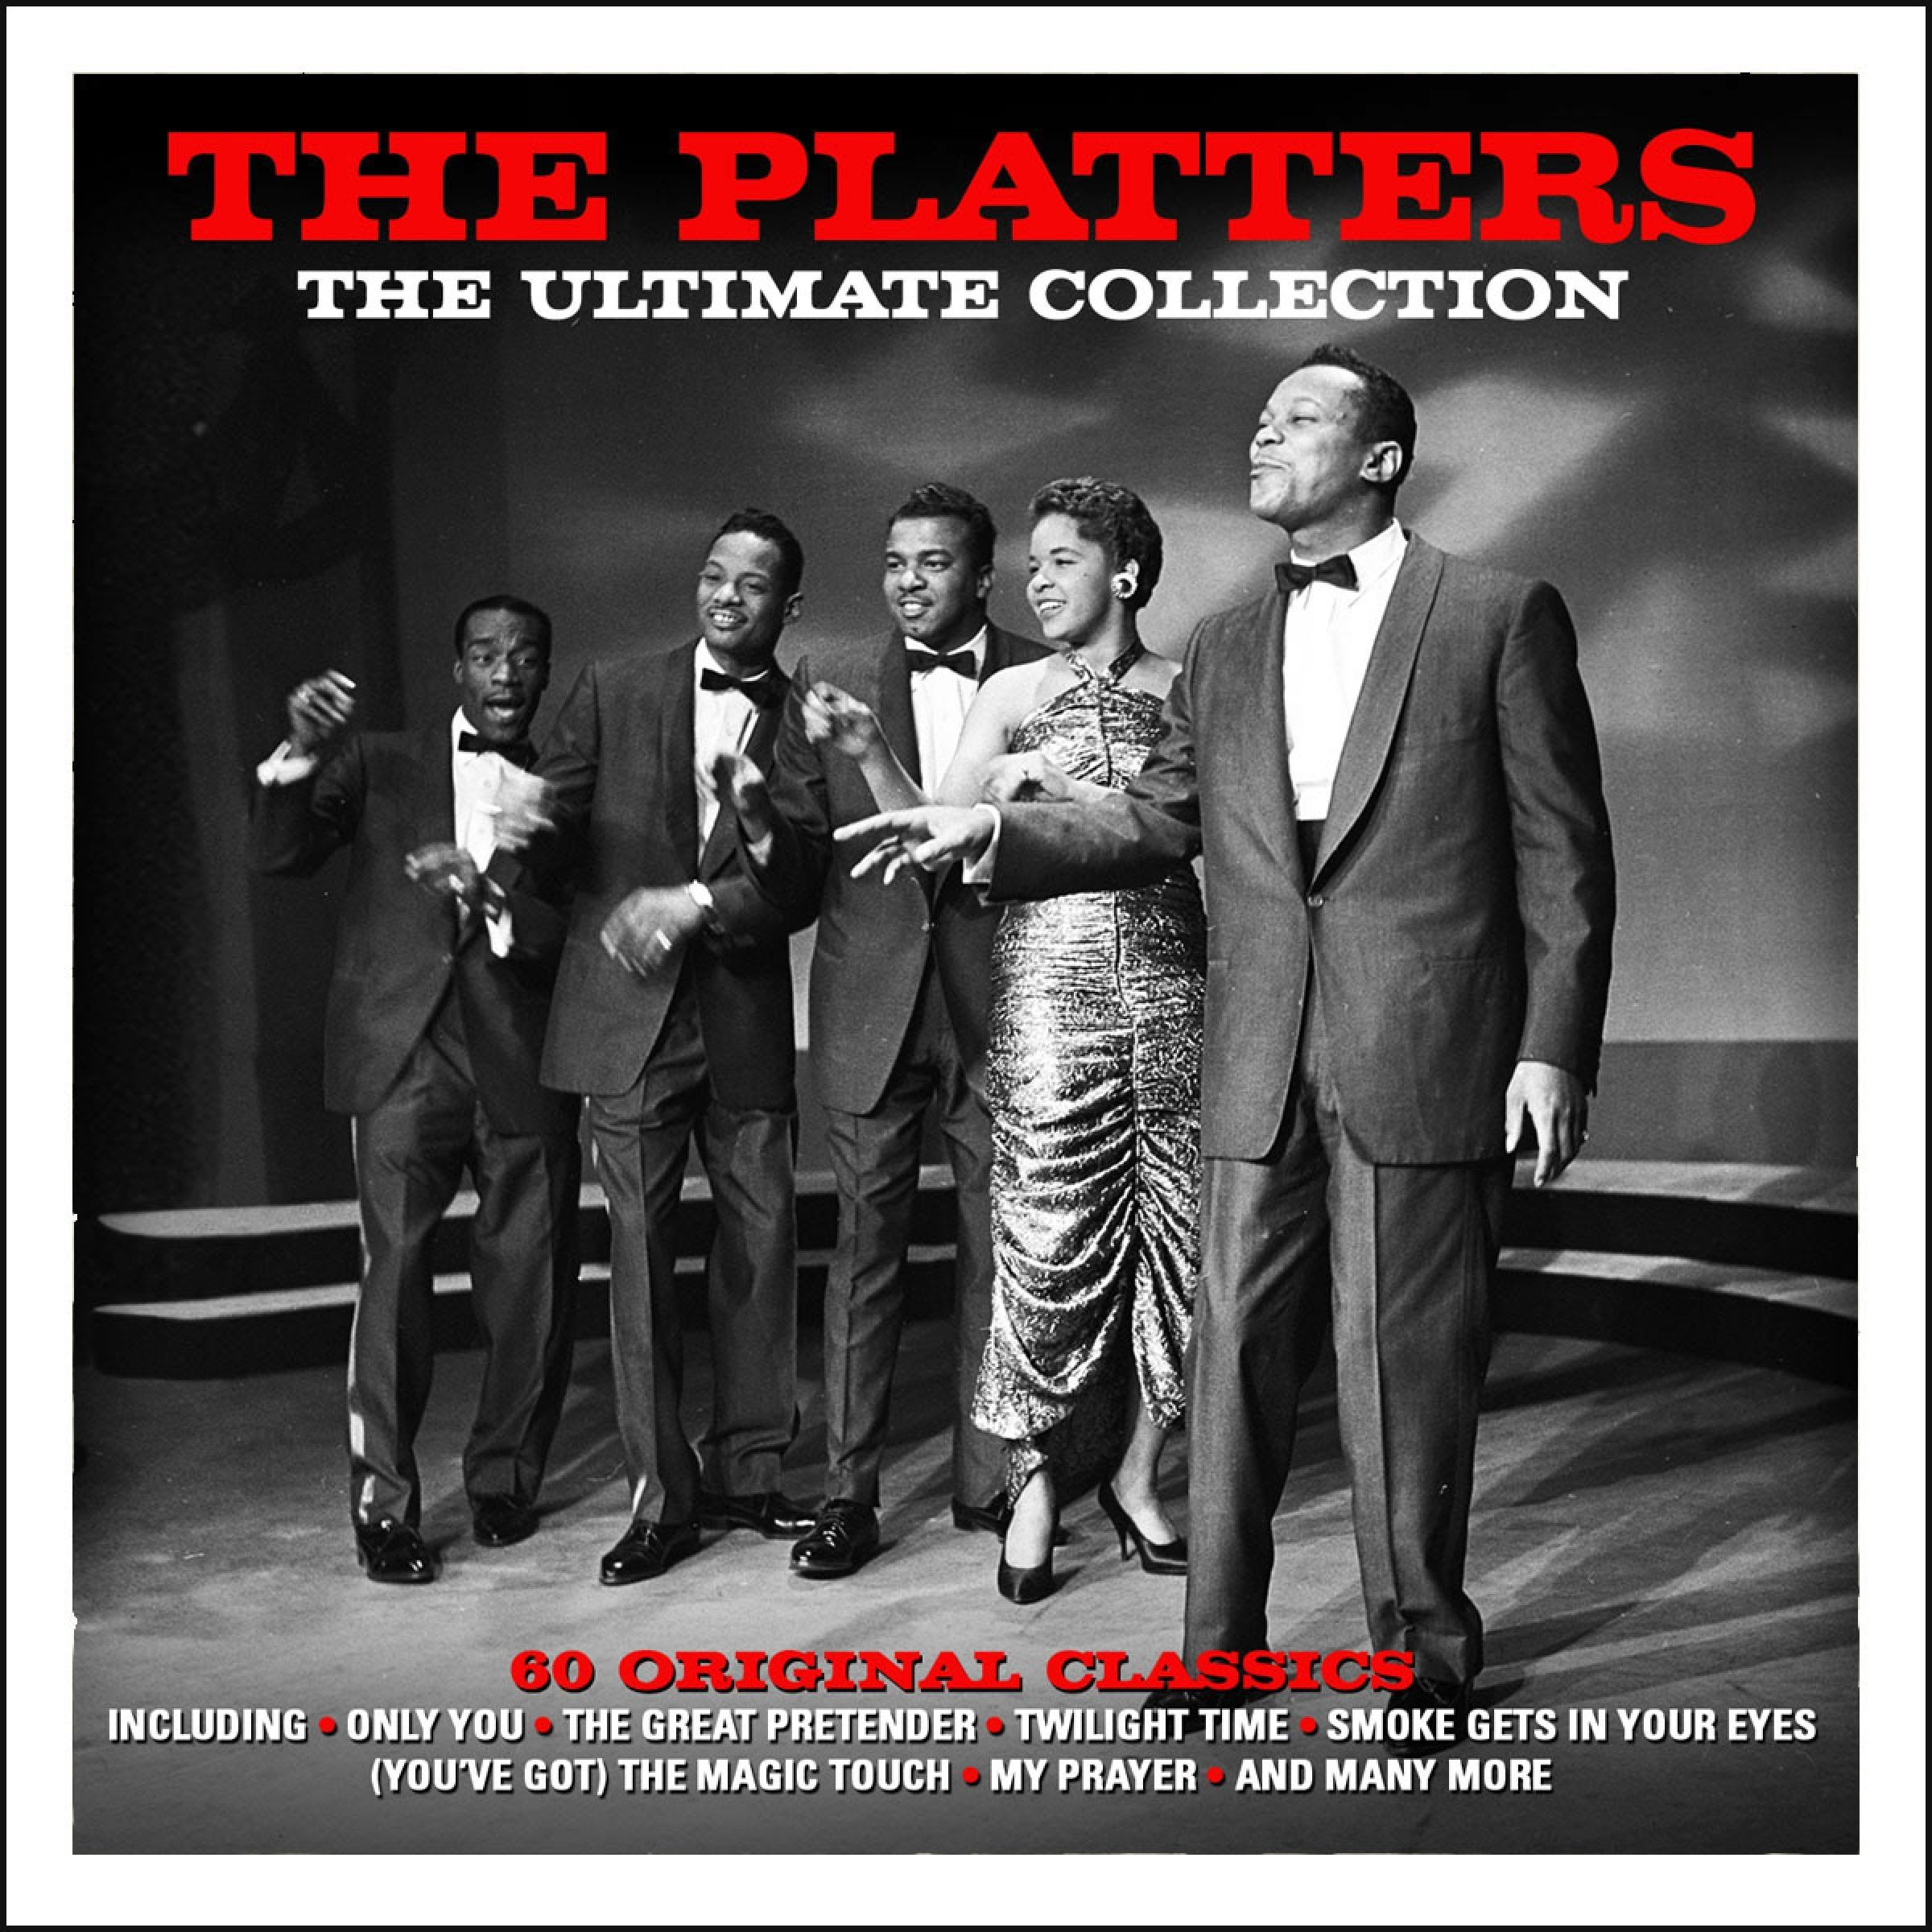 The Platters - The Ultimate Collection (Not Now Music) [Full Album]